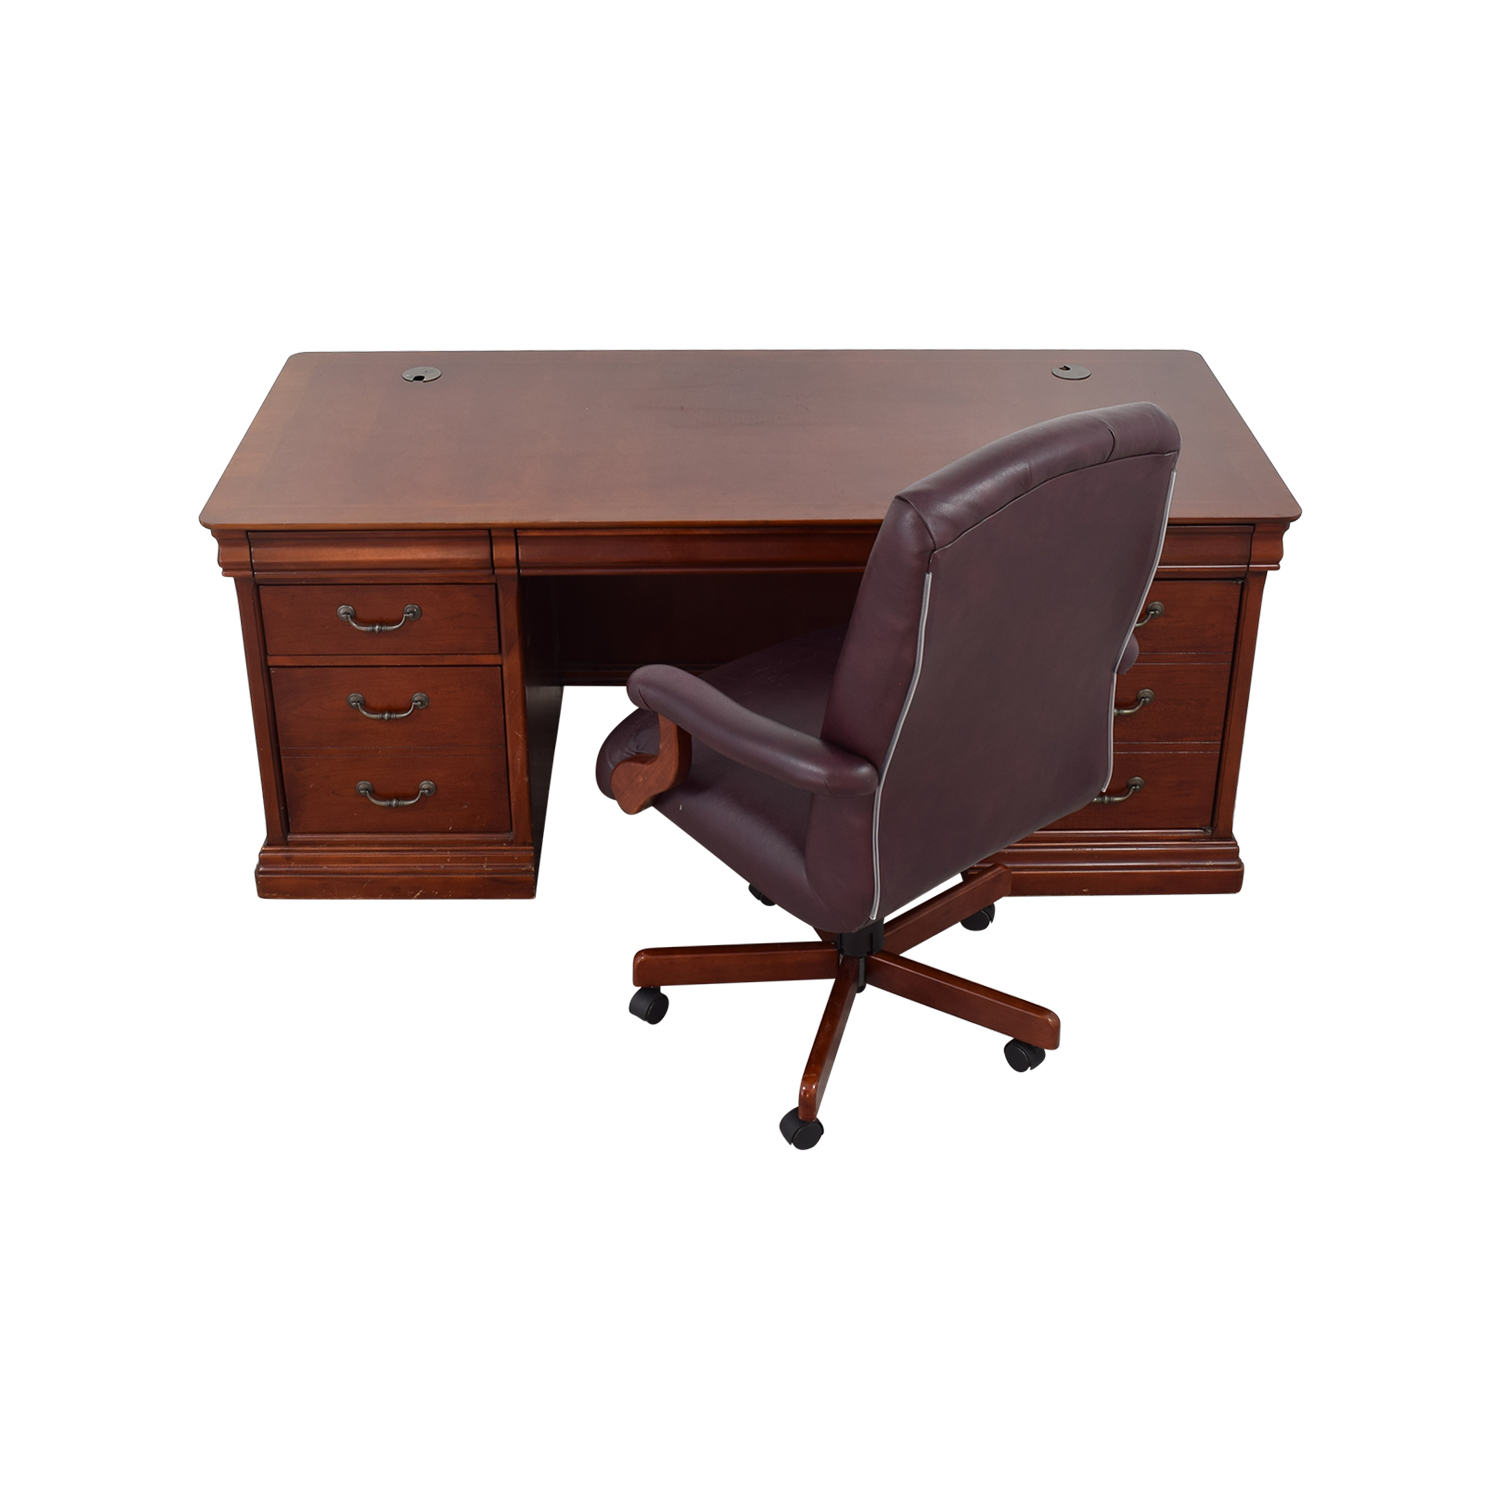 81 off haverty s haverty s executive desk with leather chair tables